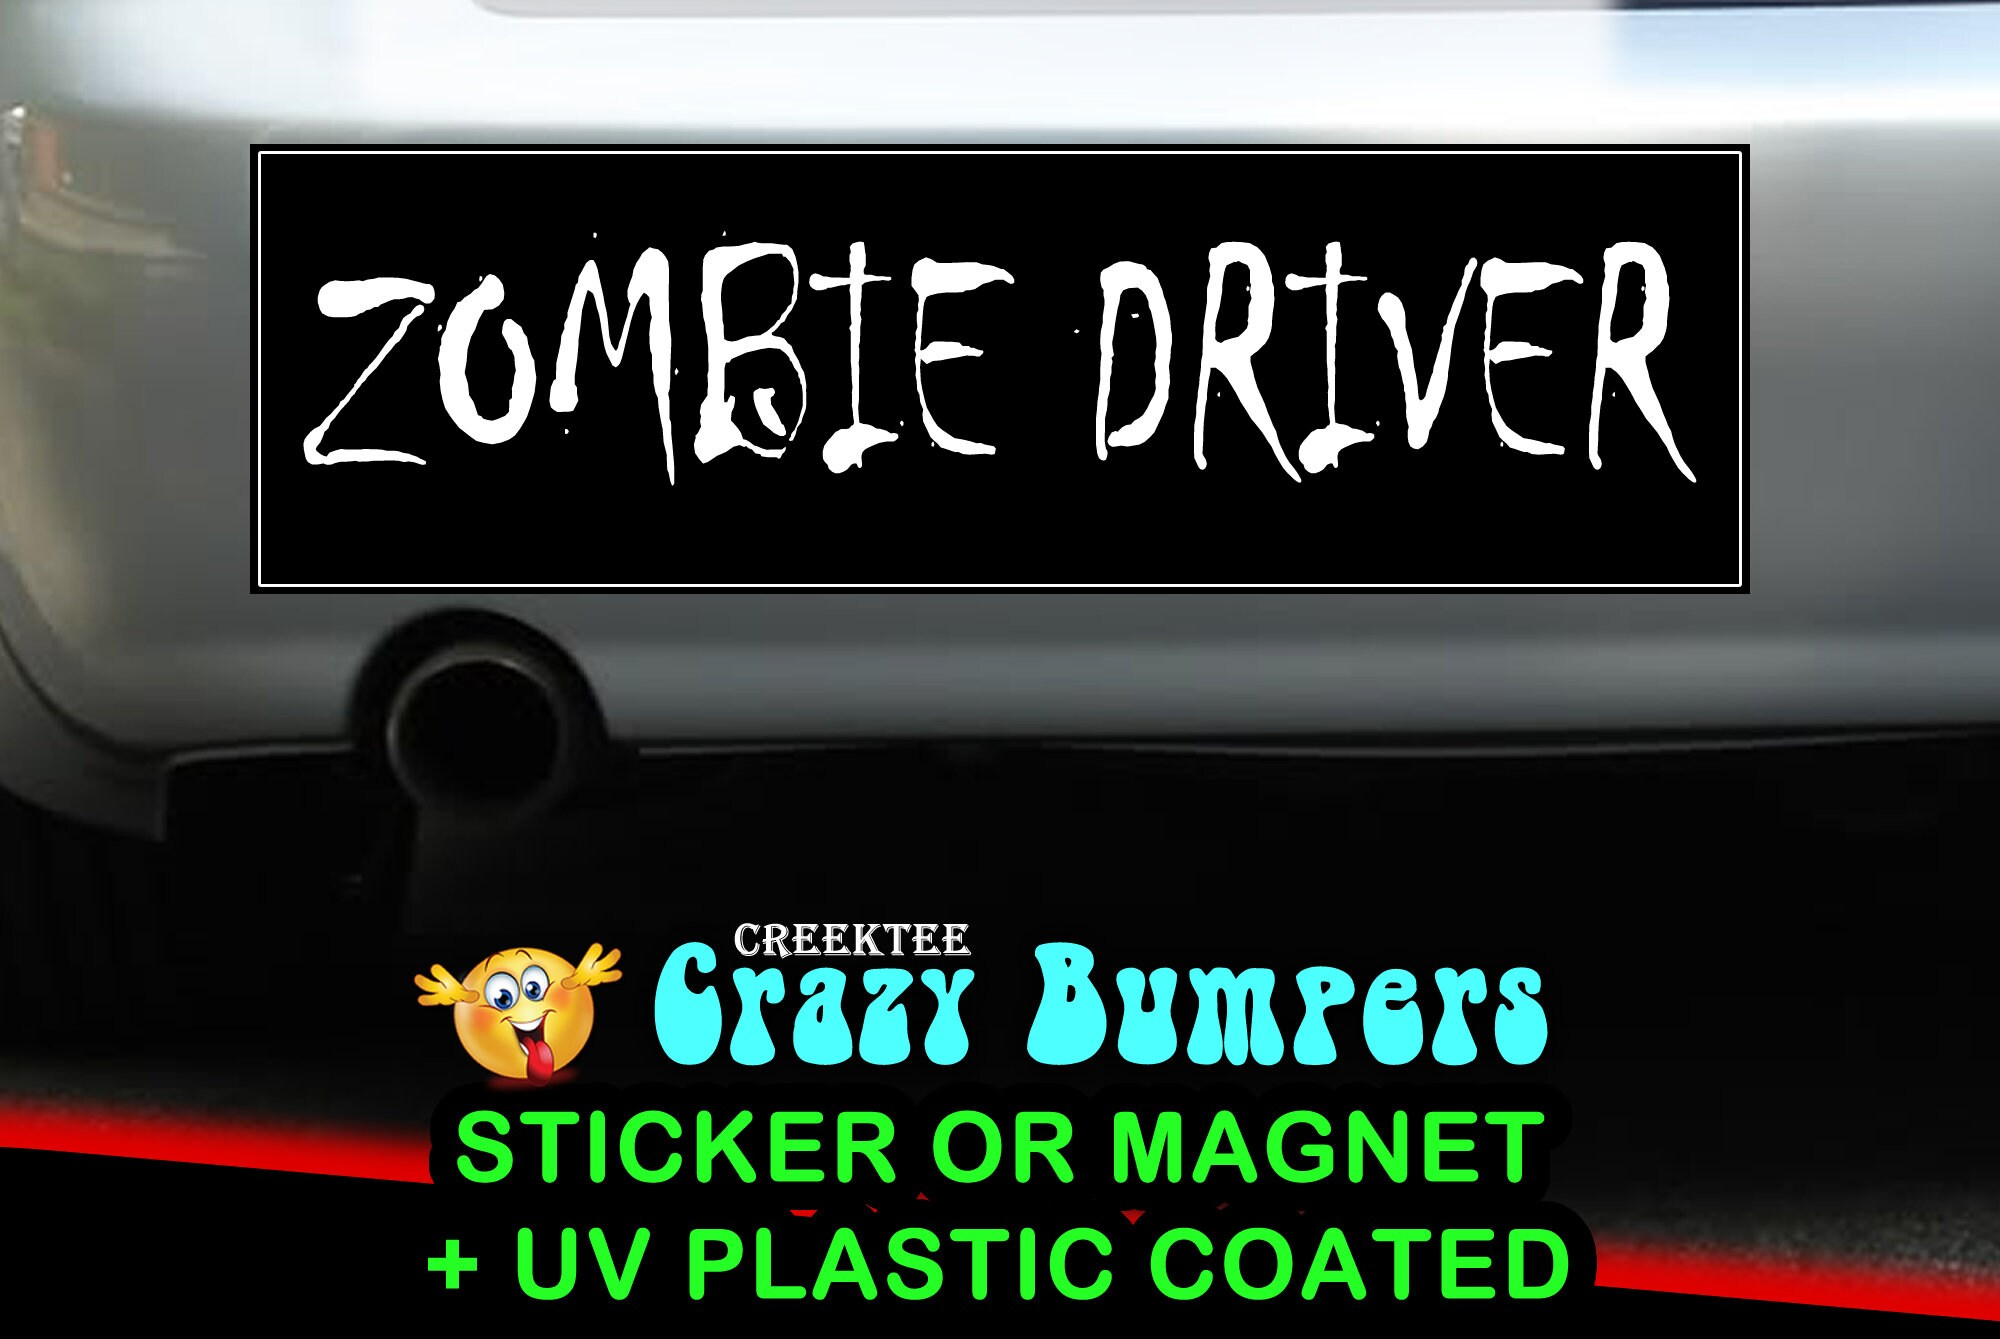 Zombie Driver Bumper Sticker 10 x 3 Bumper Sticker or Magnetic Bumper Sticker Available